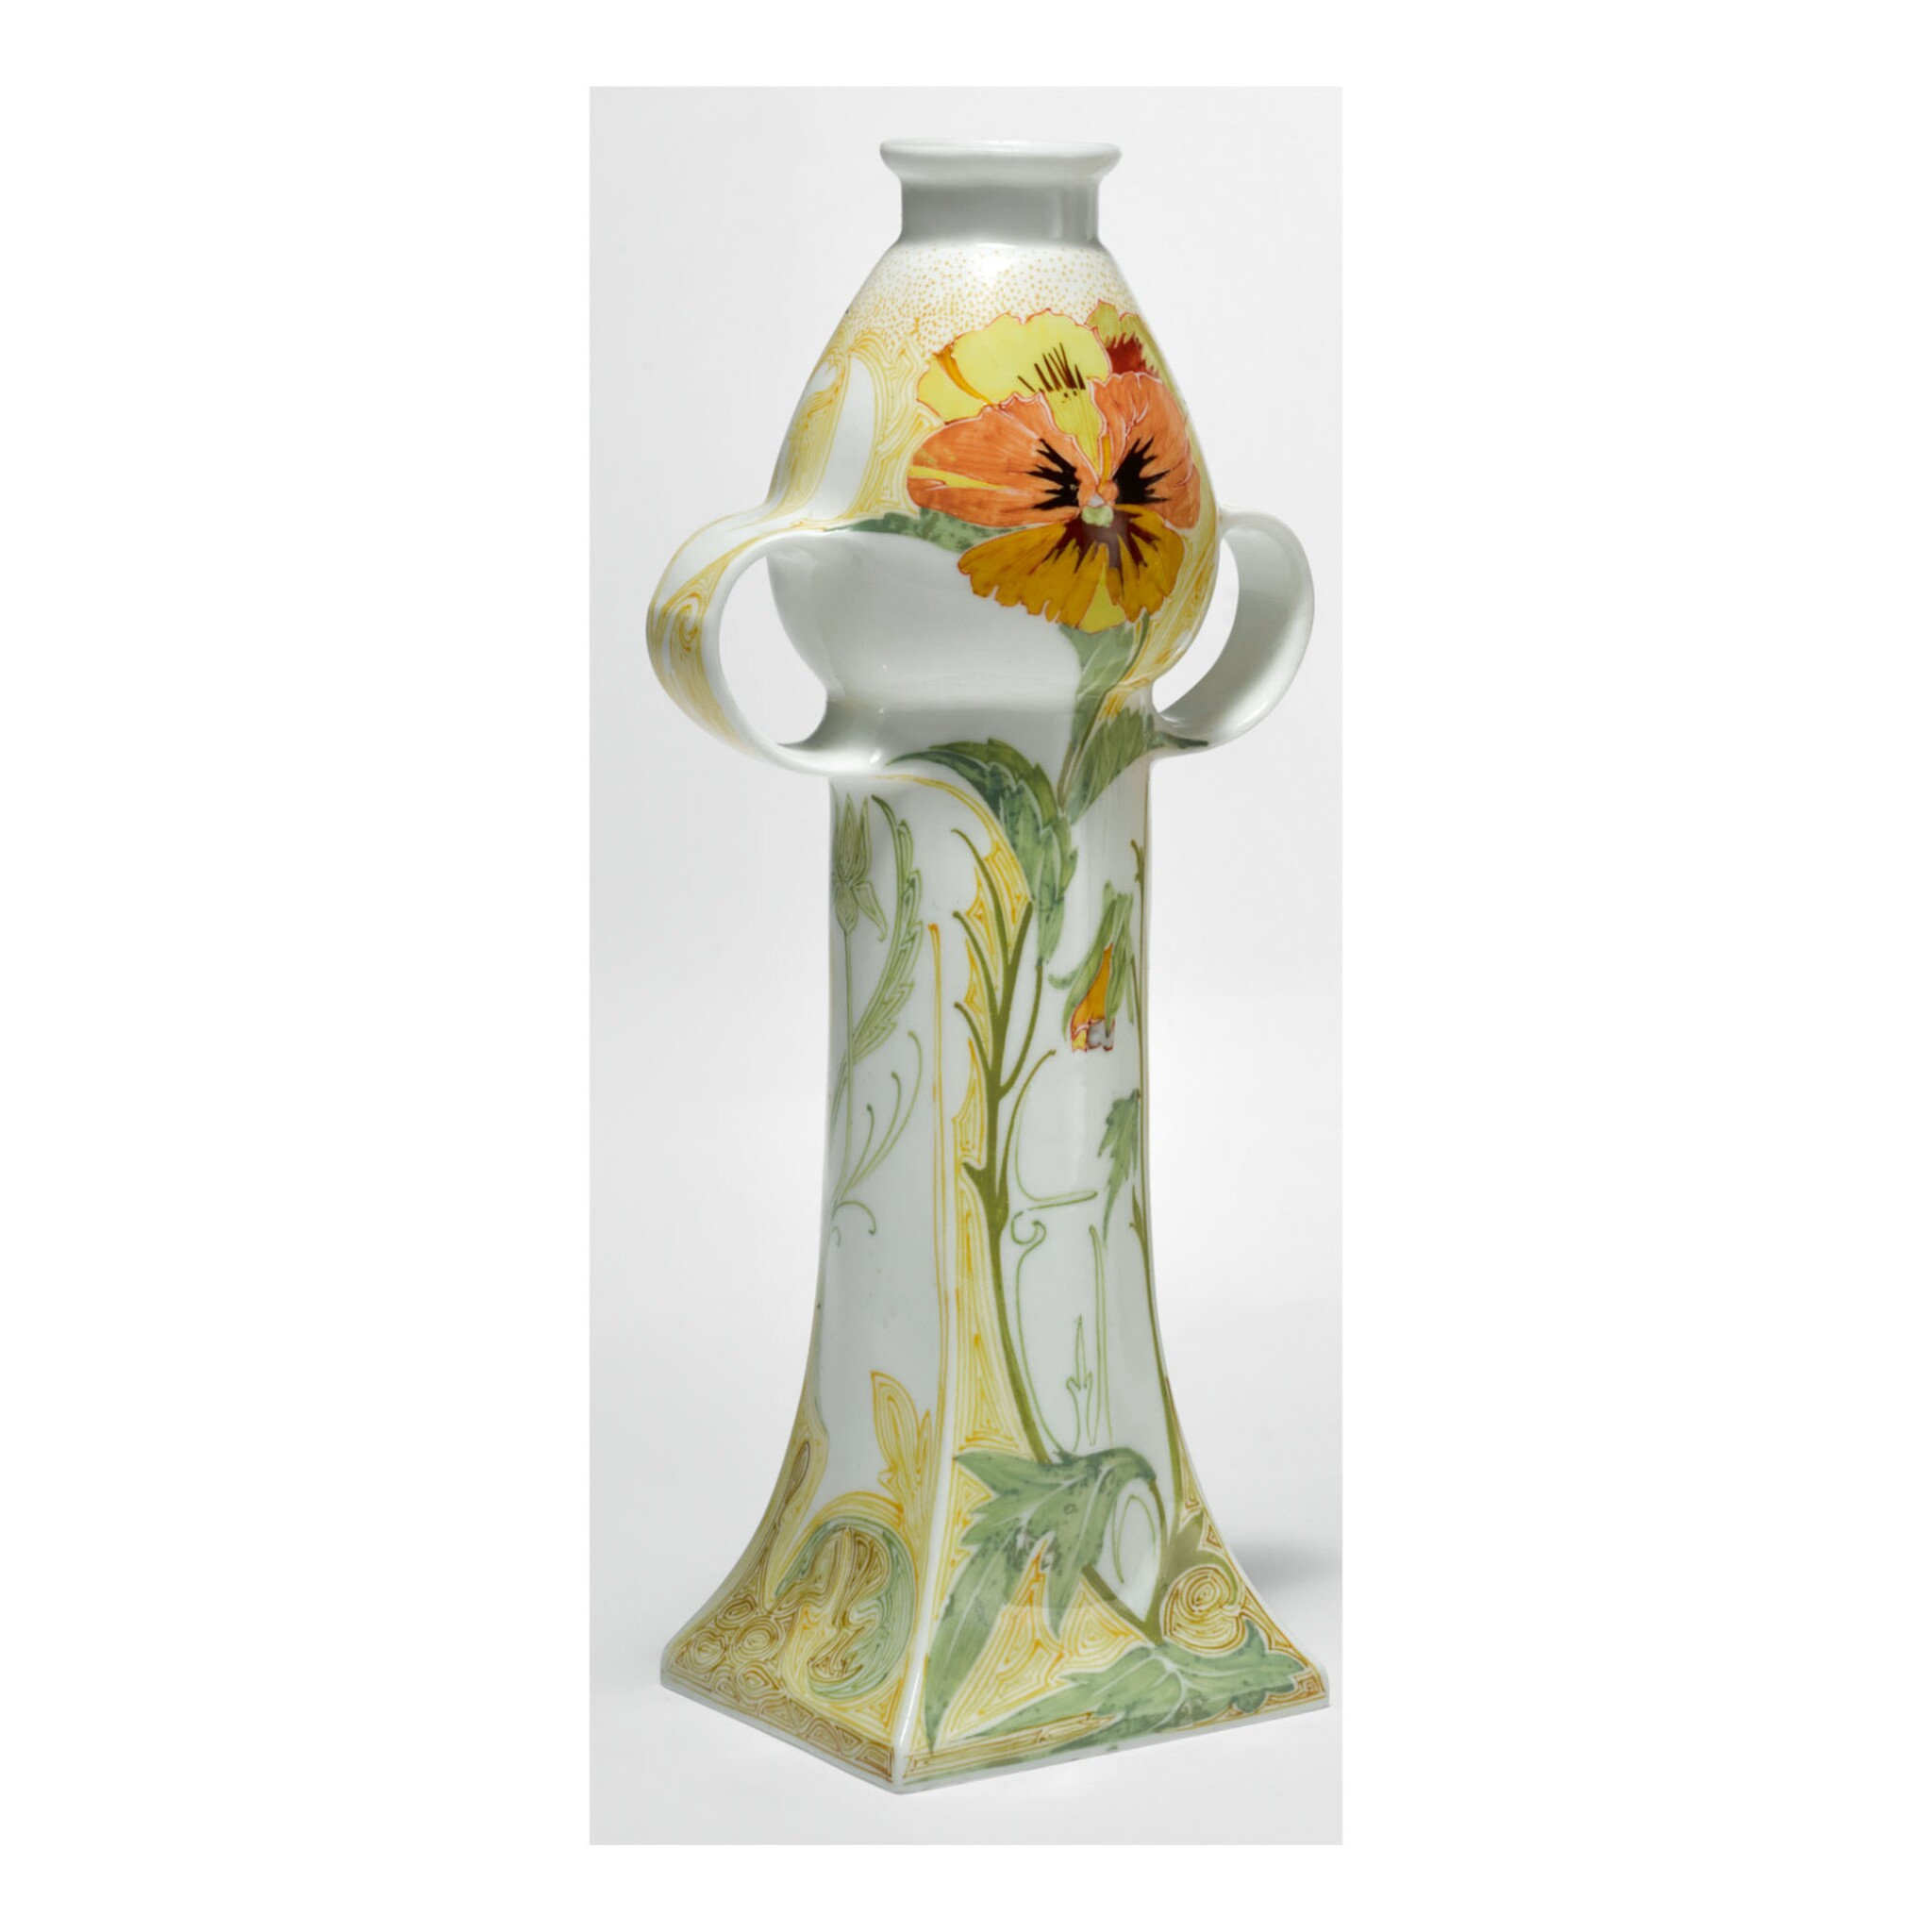 """View full screen - View 1 of Lot 122. ROZENBURG   TWO-HANDLED """"PANSY AND SPARROW"""" VASE."""